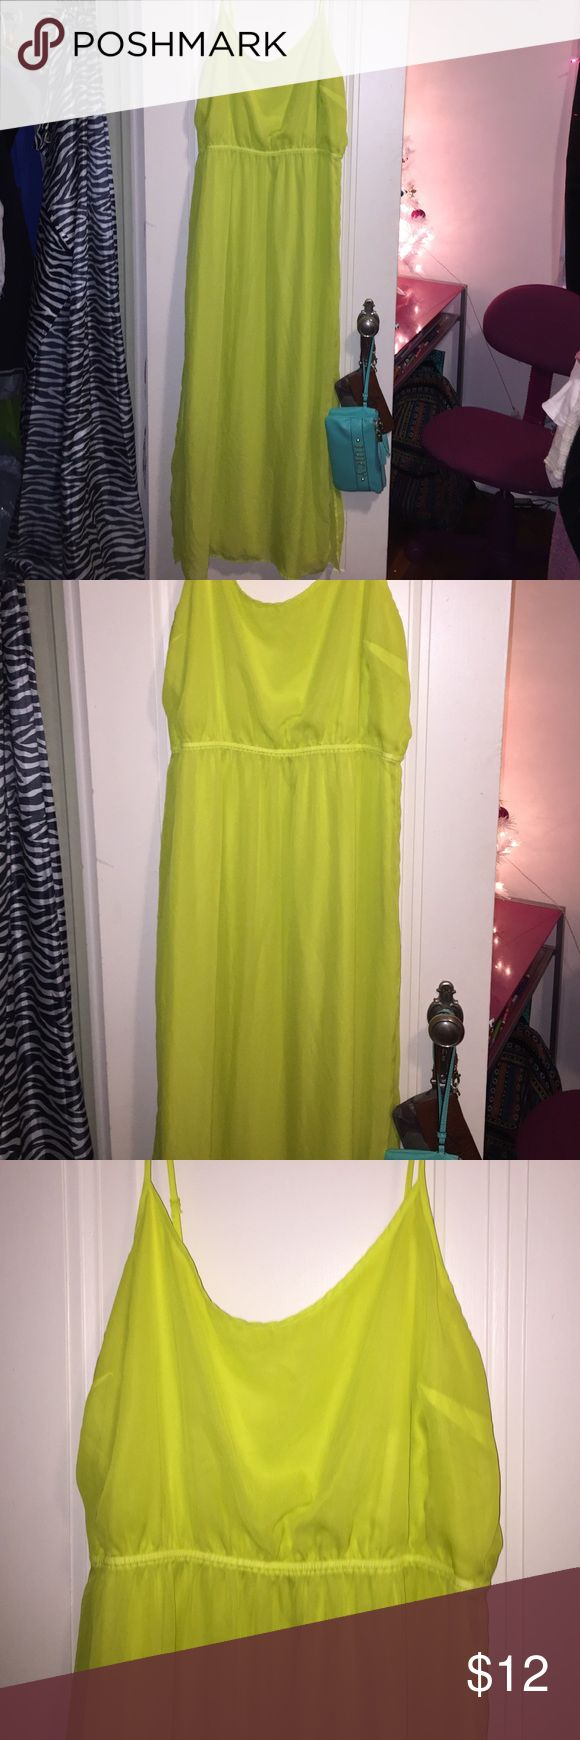 Old nav, Highlighter colored long maxi dress Highlighter colored. (Neon yellow) Maxi (long) flowy. Silky. Adjustable straps. Old Navy Dresses Maxi